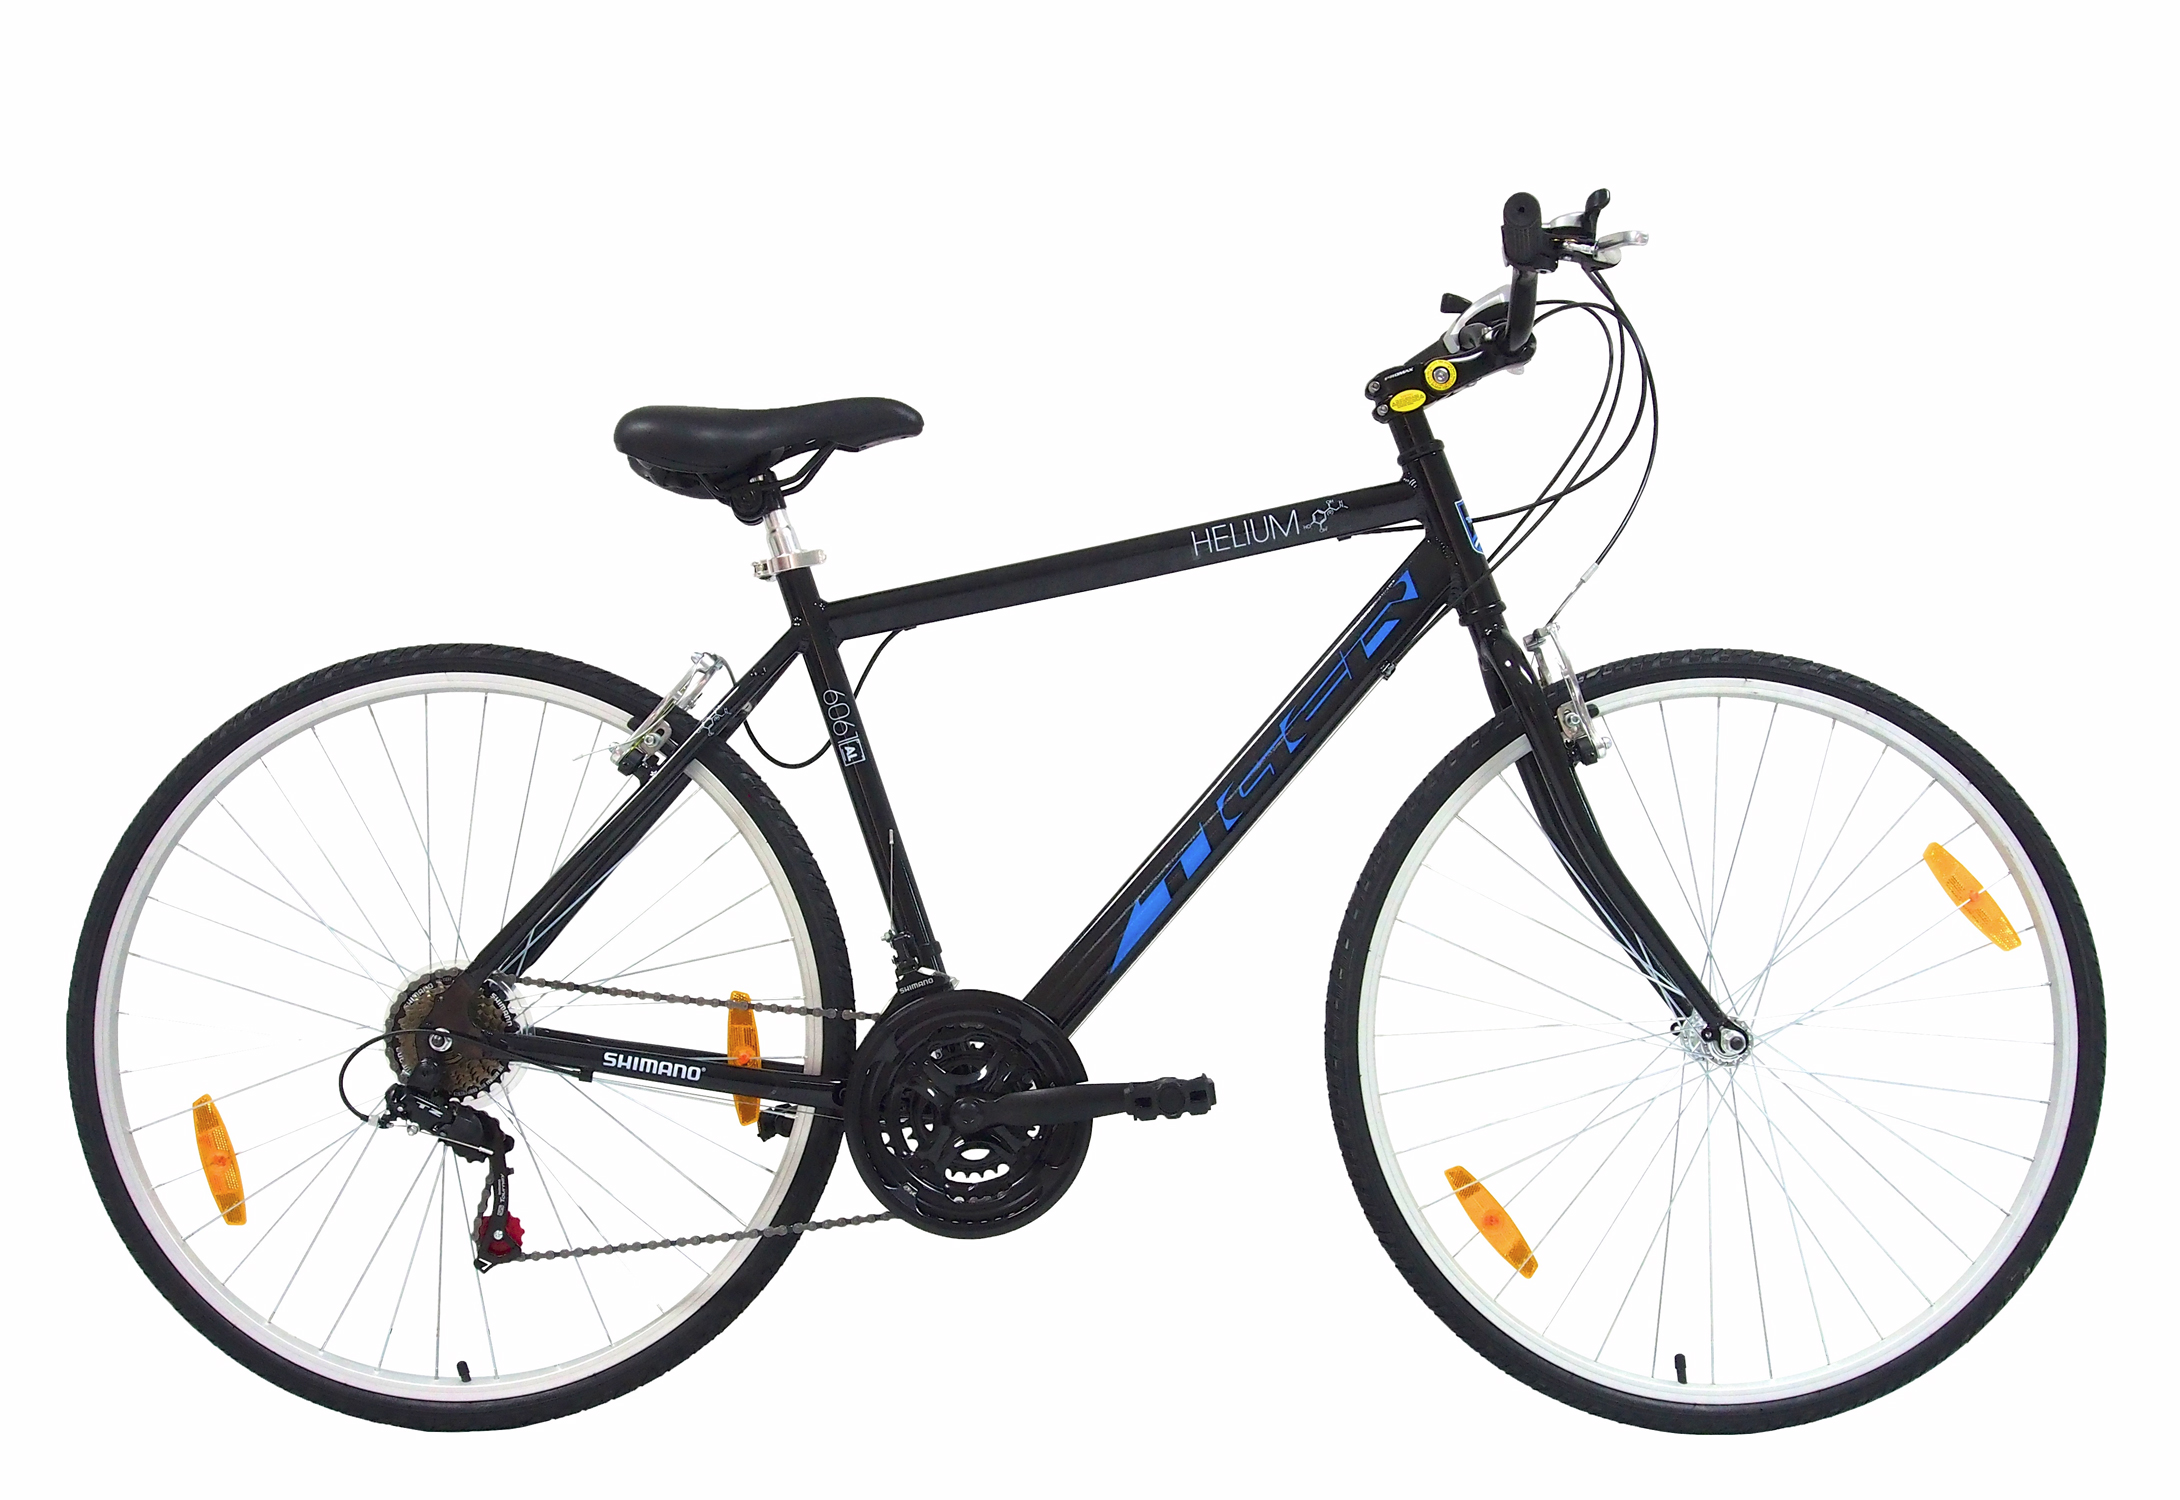 Tiger Helium Gents Hybrid Sports Amp Trekking Bike Alloy Frame